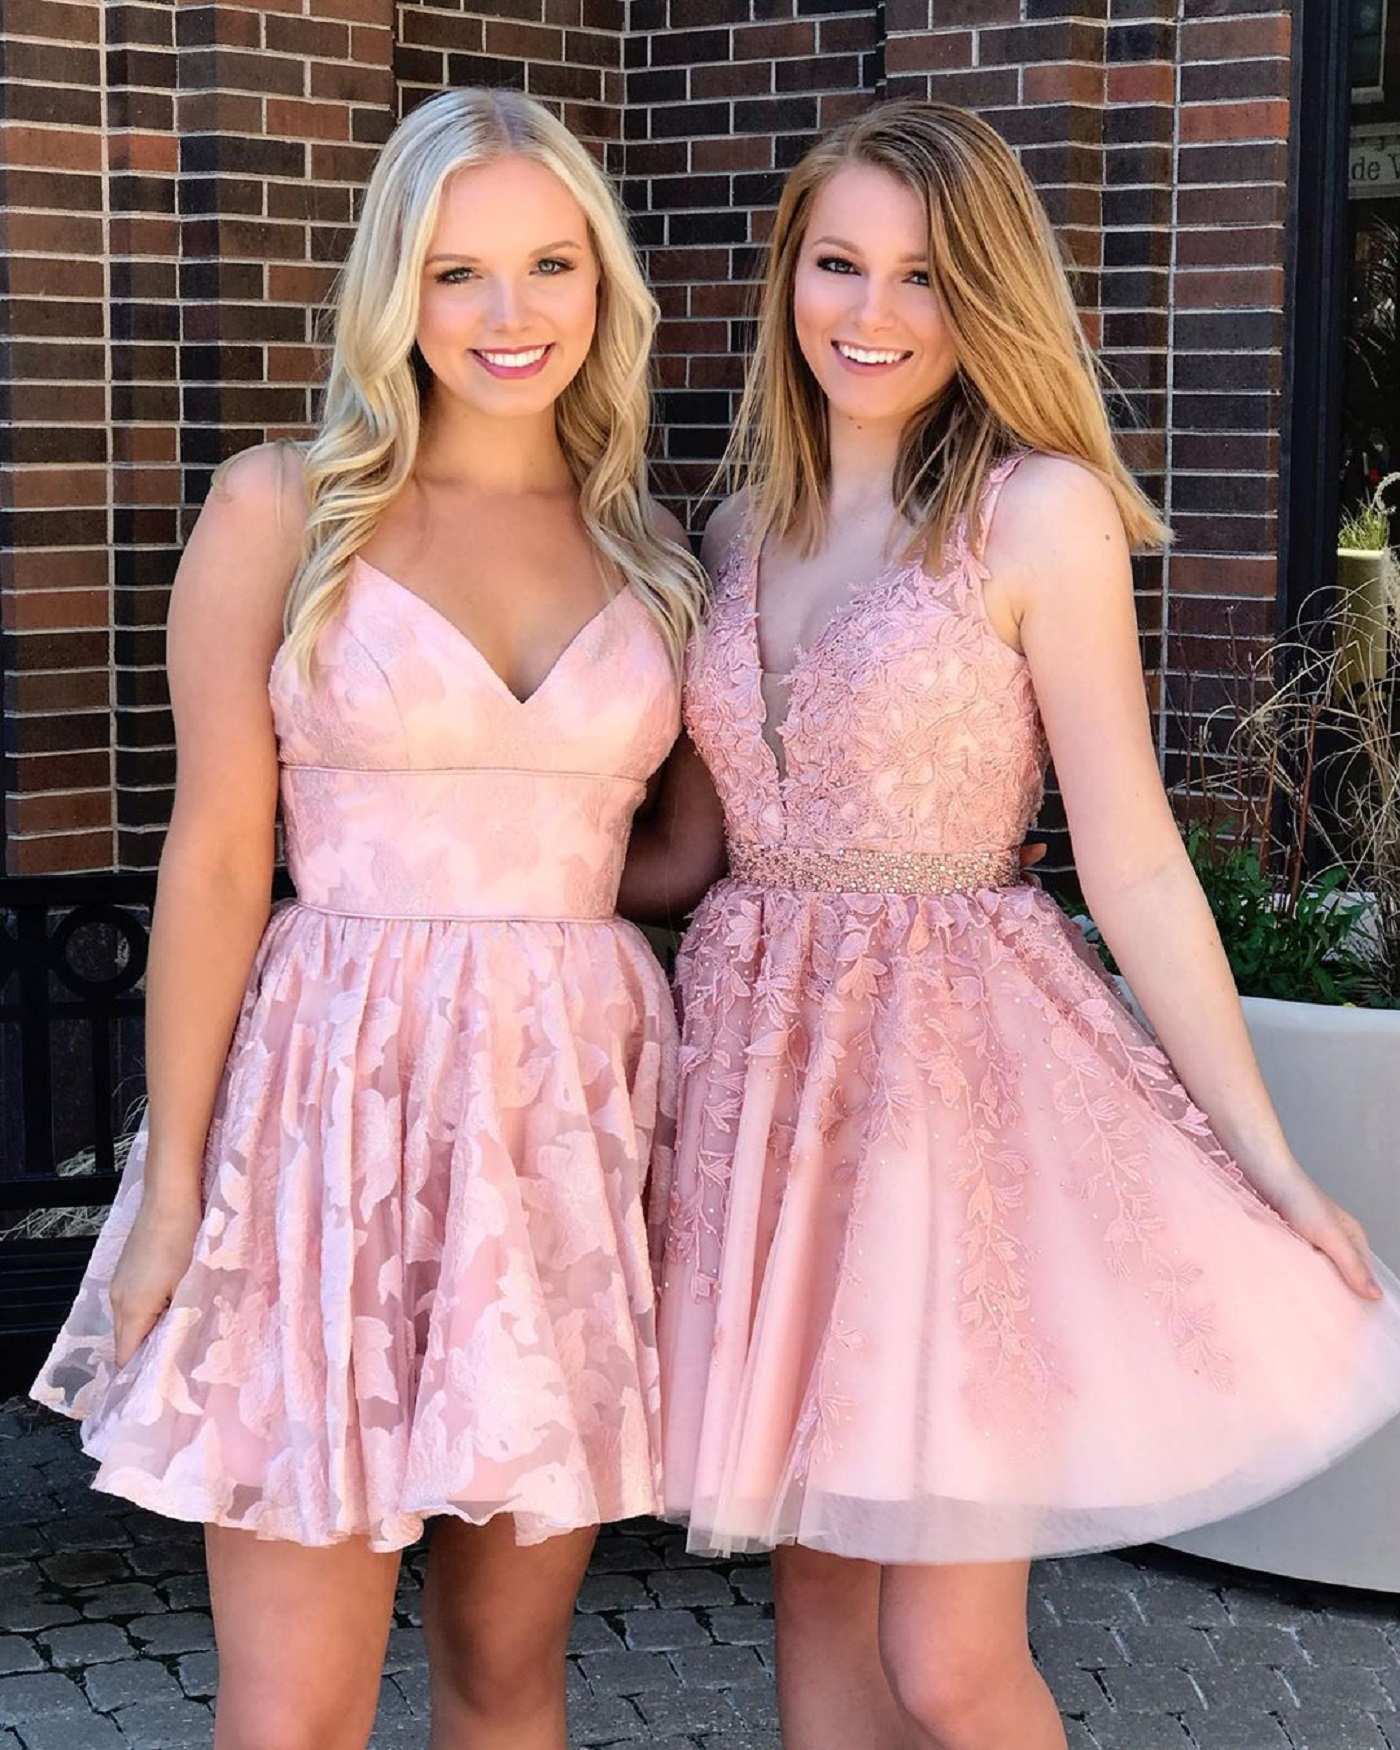 Lace A-Line Dress in Cotton Candy Pink